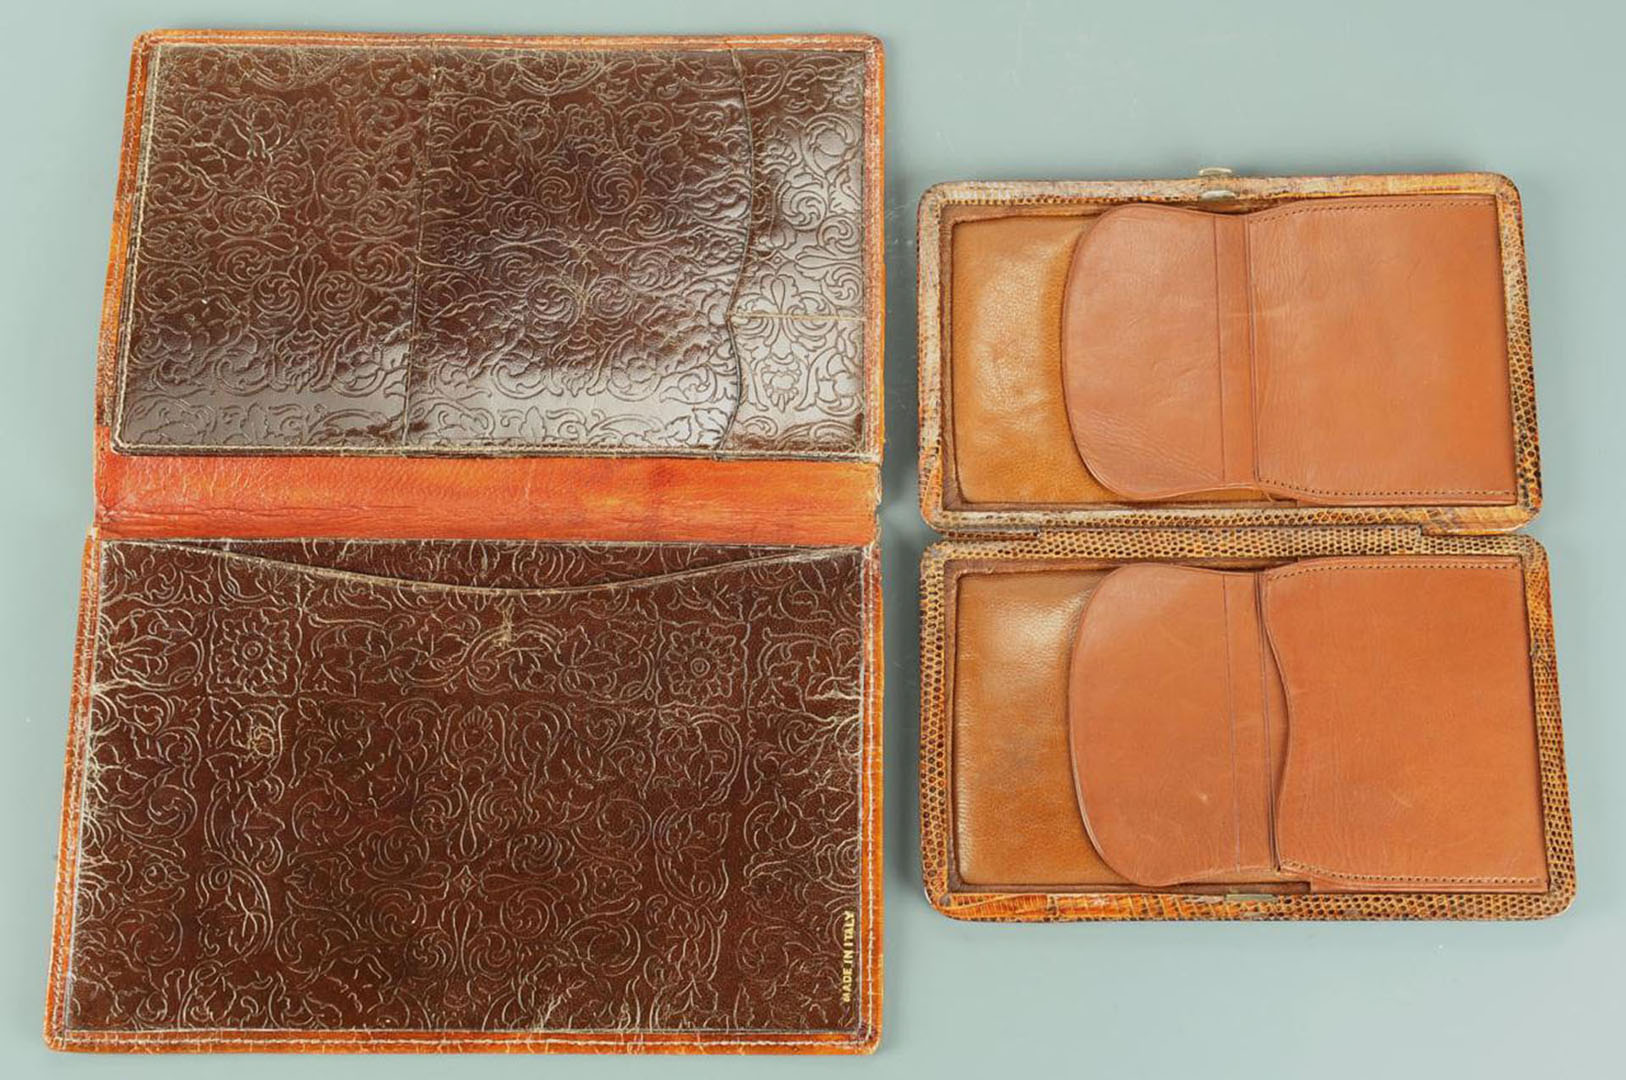 Lot 2872327: 2 Tobacco Boxes & 2 Vintage Wallets, 4 items